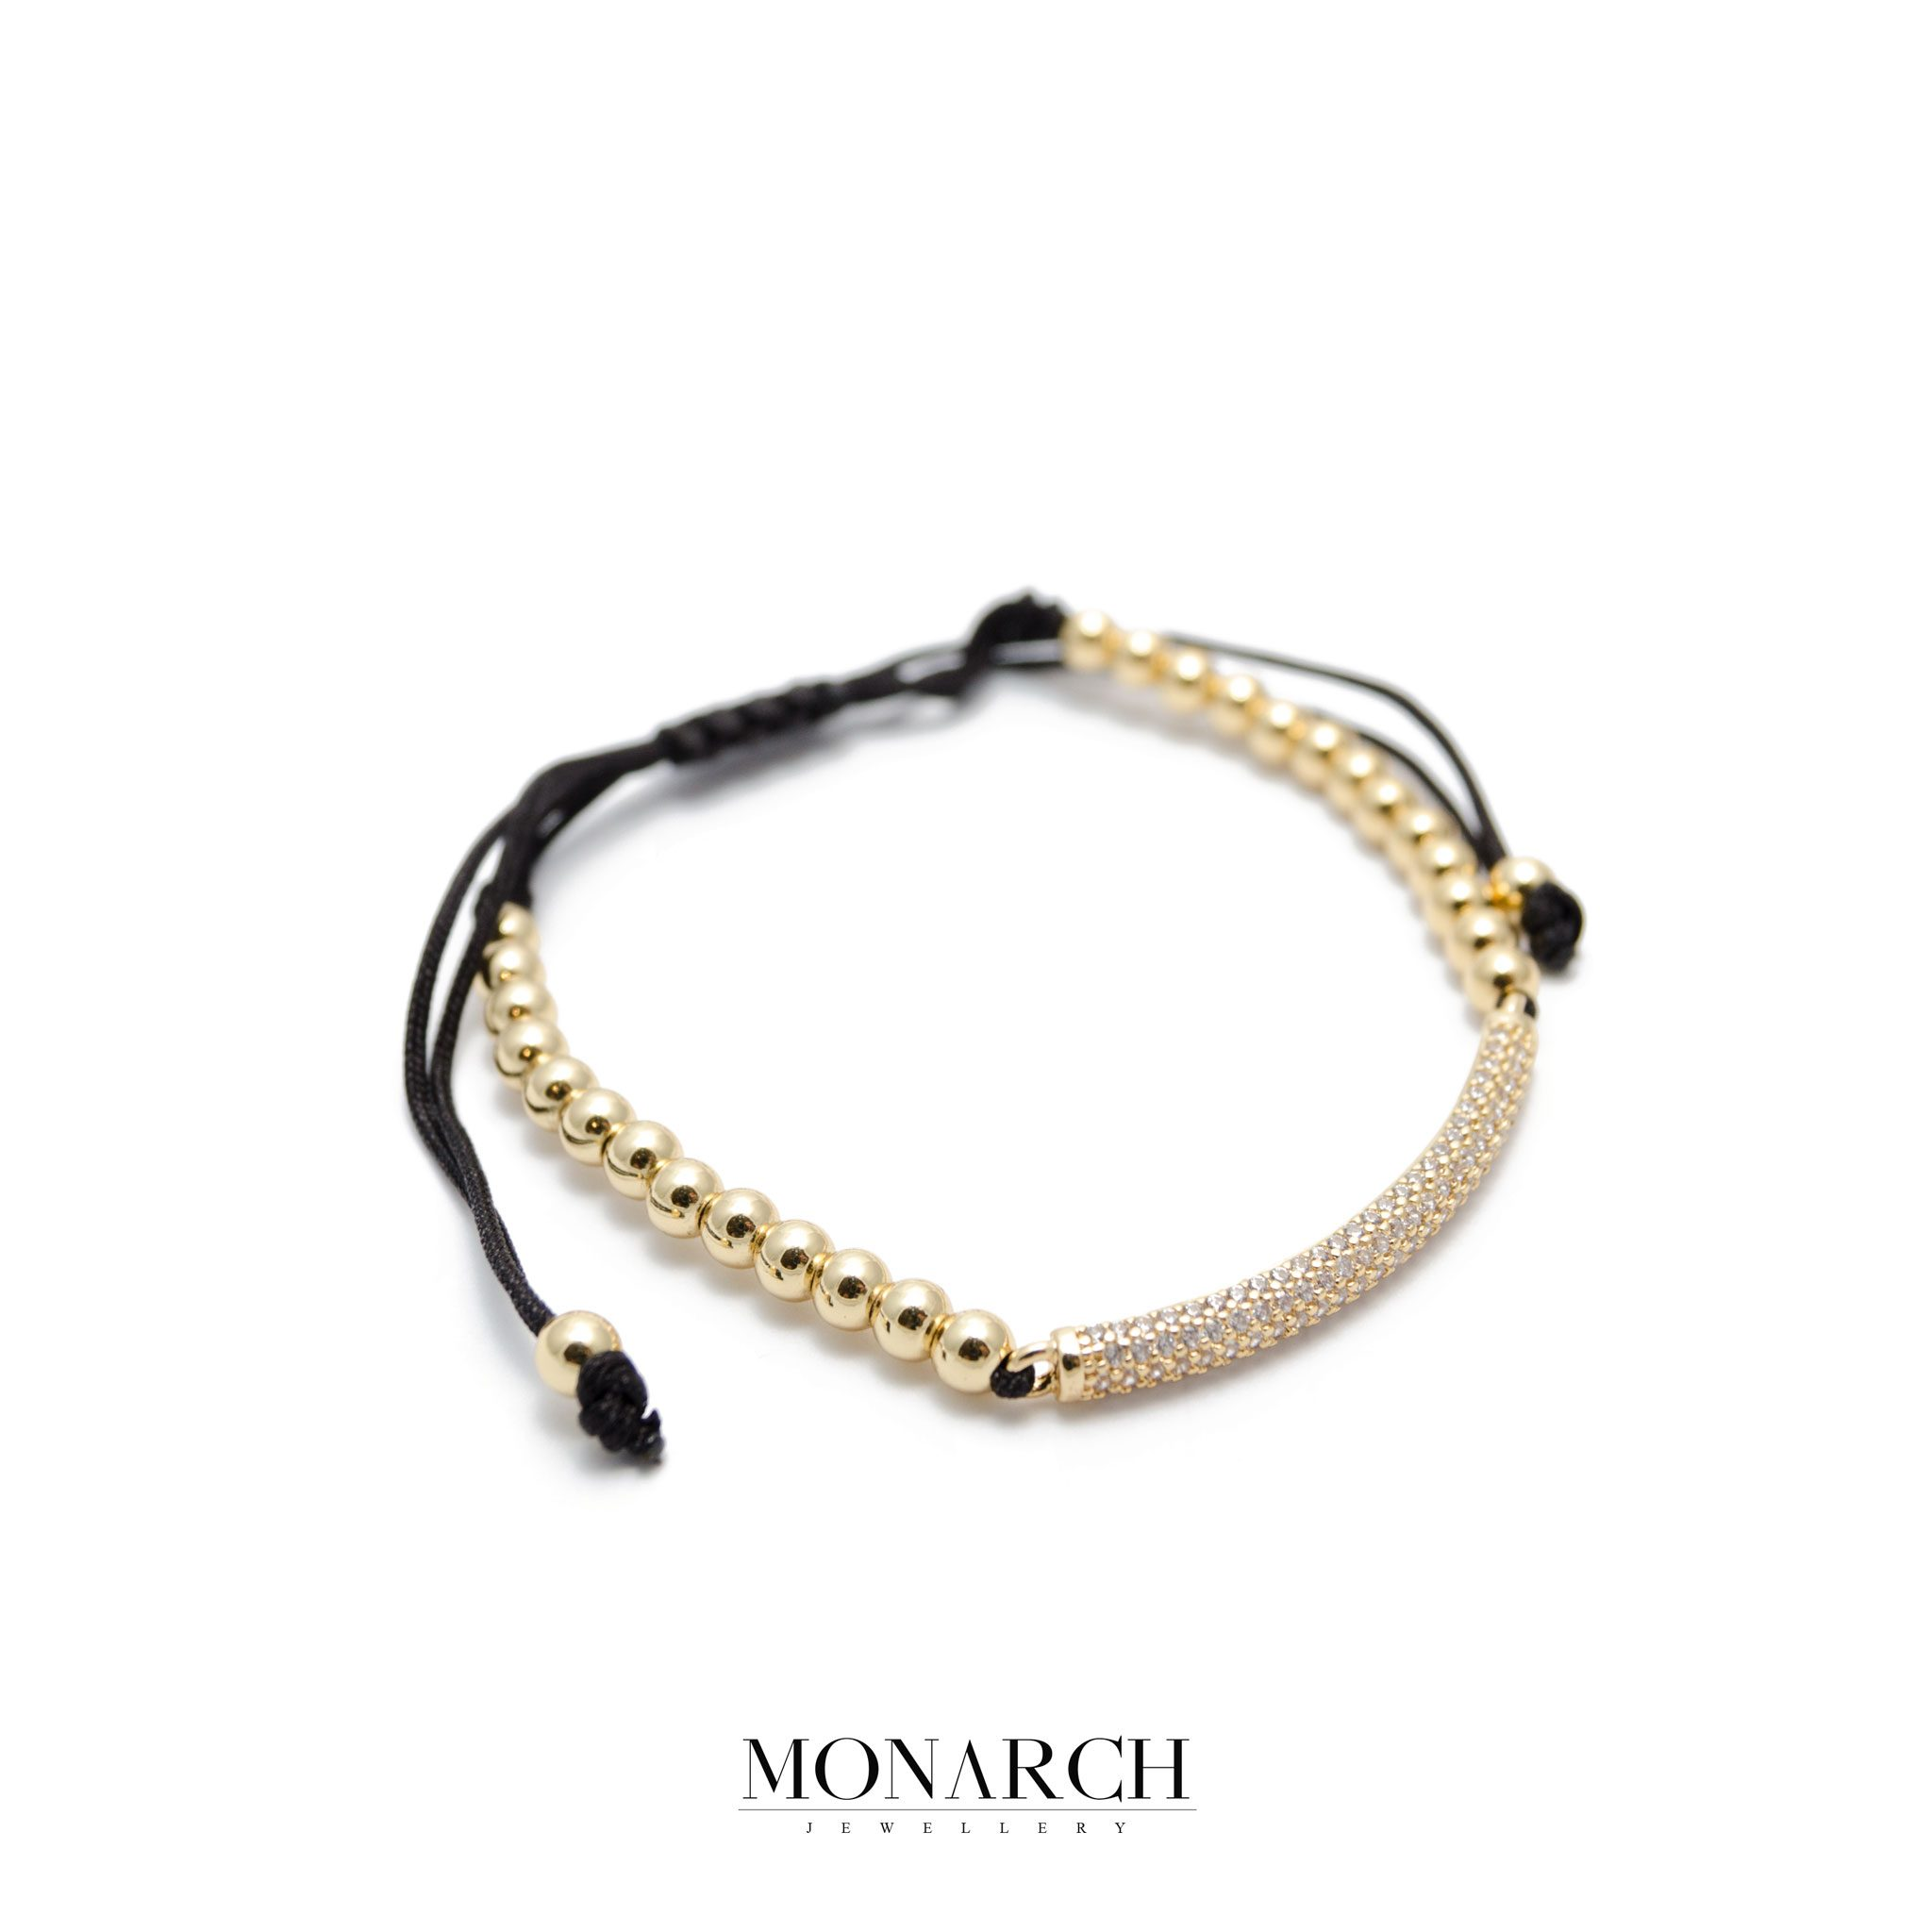 Monarch Jewellery 24K Micro Pave Charm Luxury Macrame Bracelet